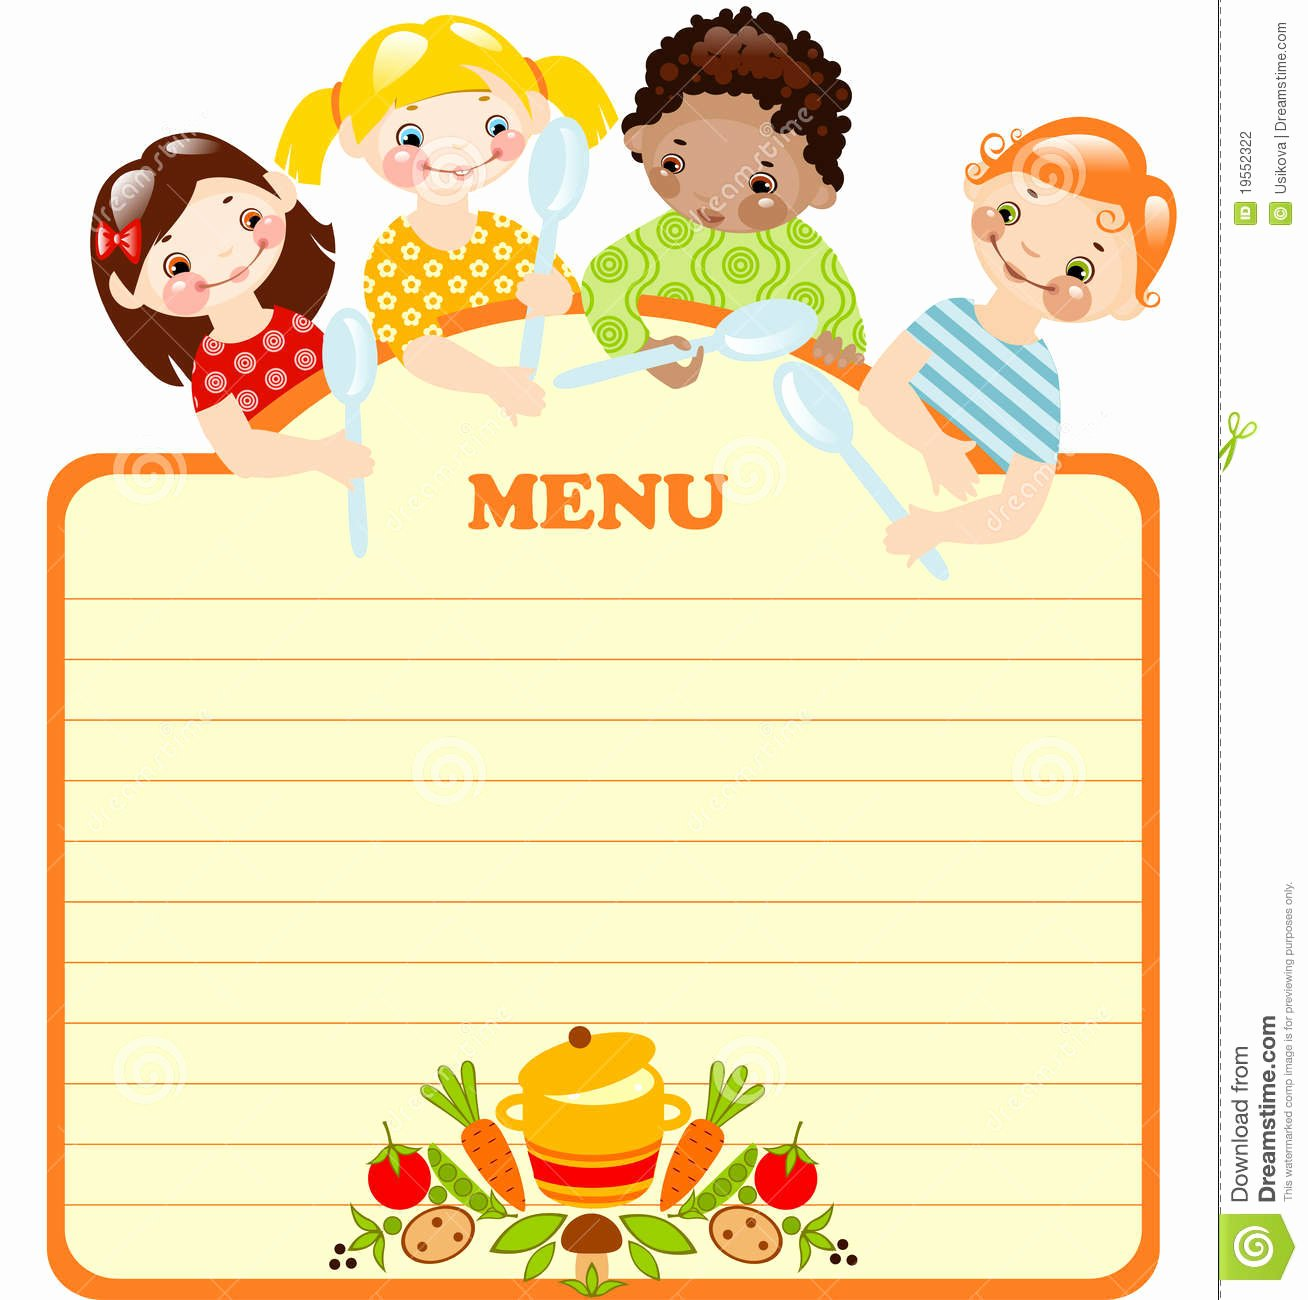 Free Kids Menu Template Elegant Funny Kids with Spoonsnu Stock Vector Illustration